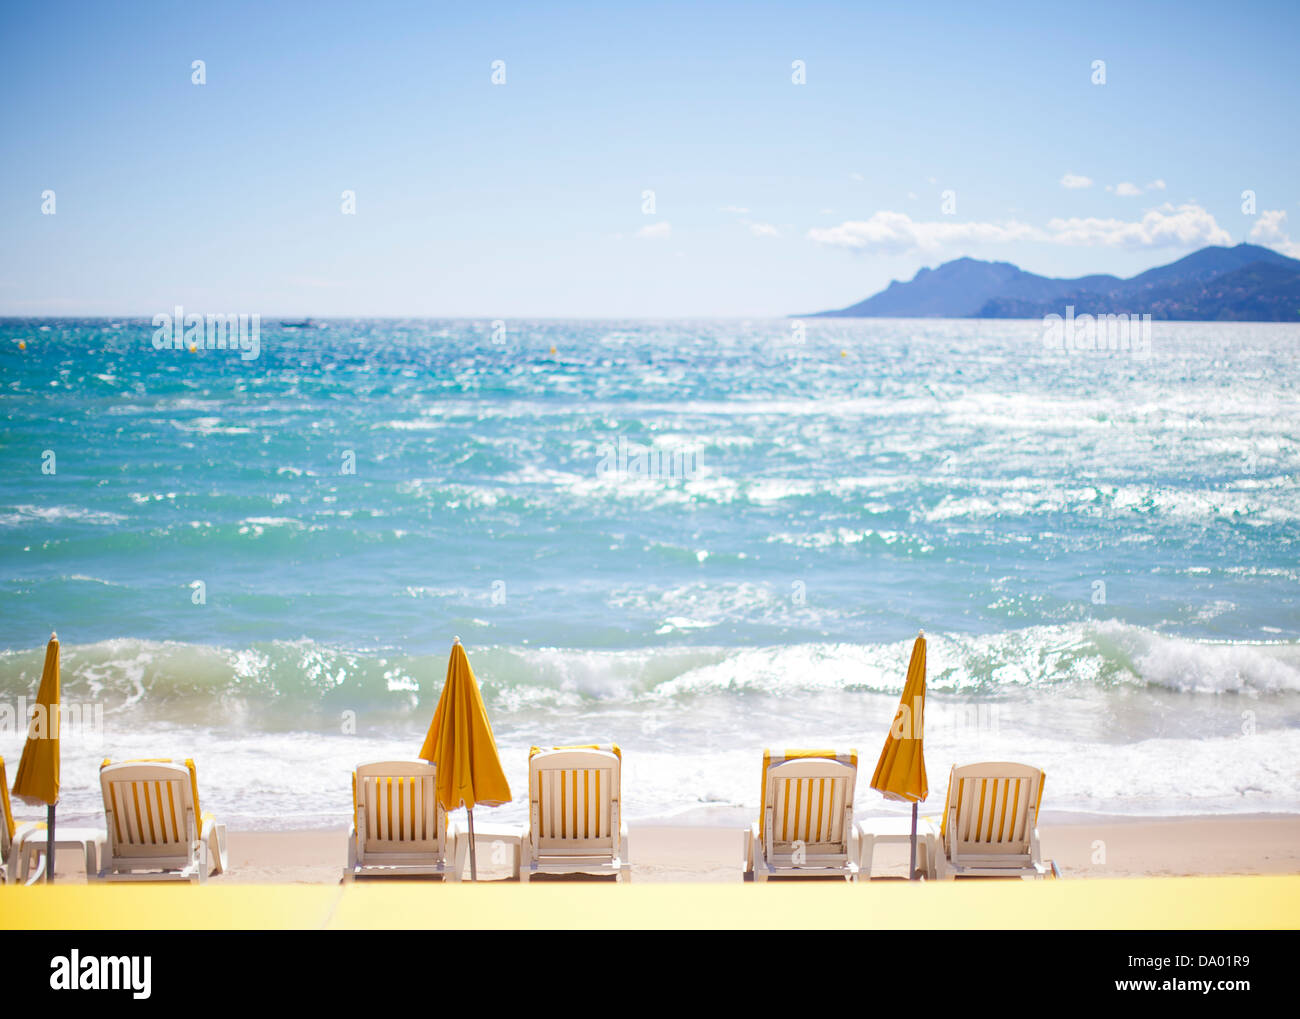 Row of yellow umbrellas and beach chairs on Mediterranean. - Stock Image